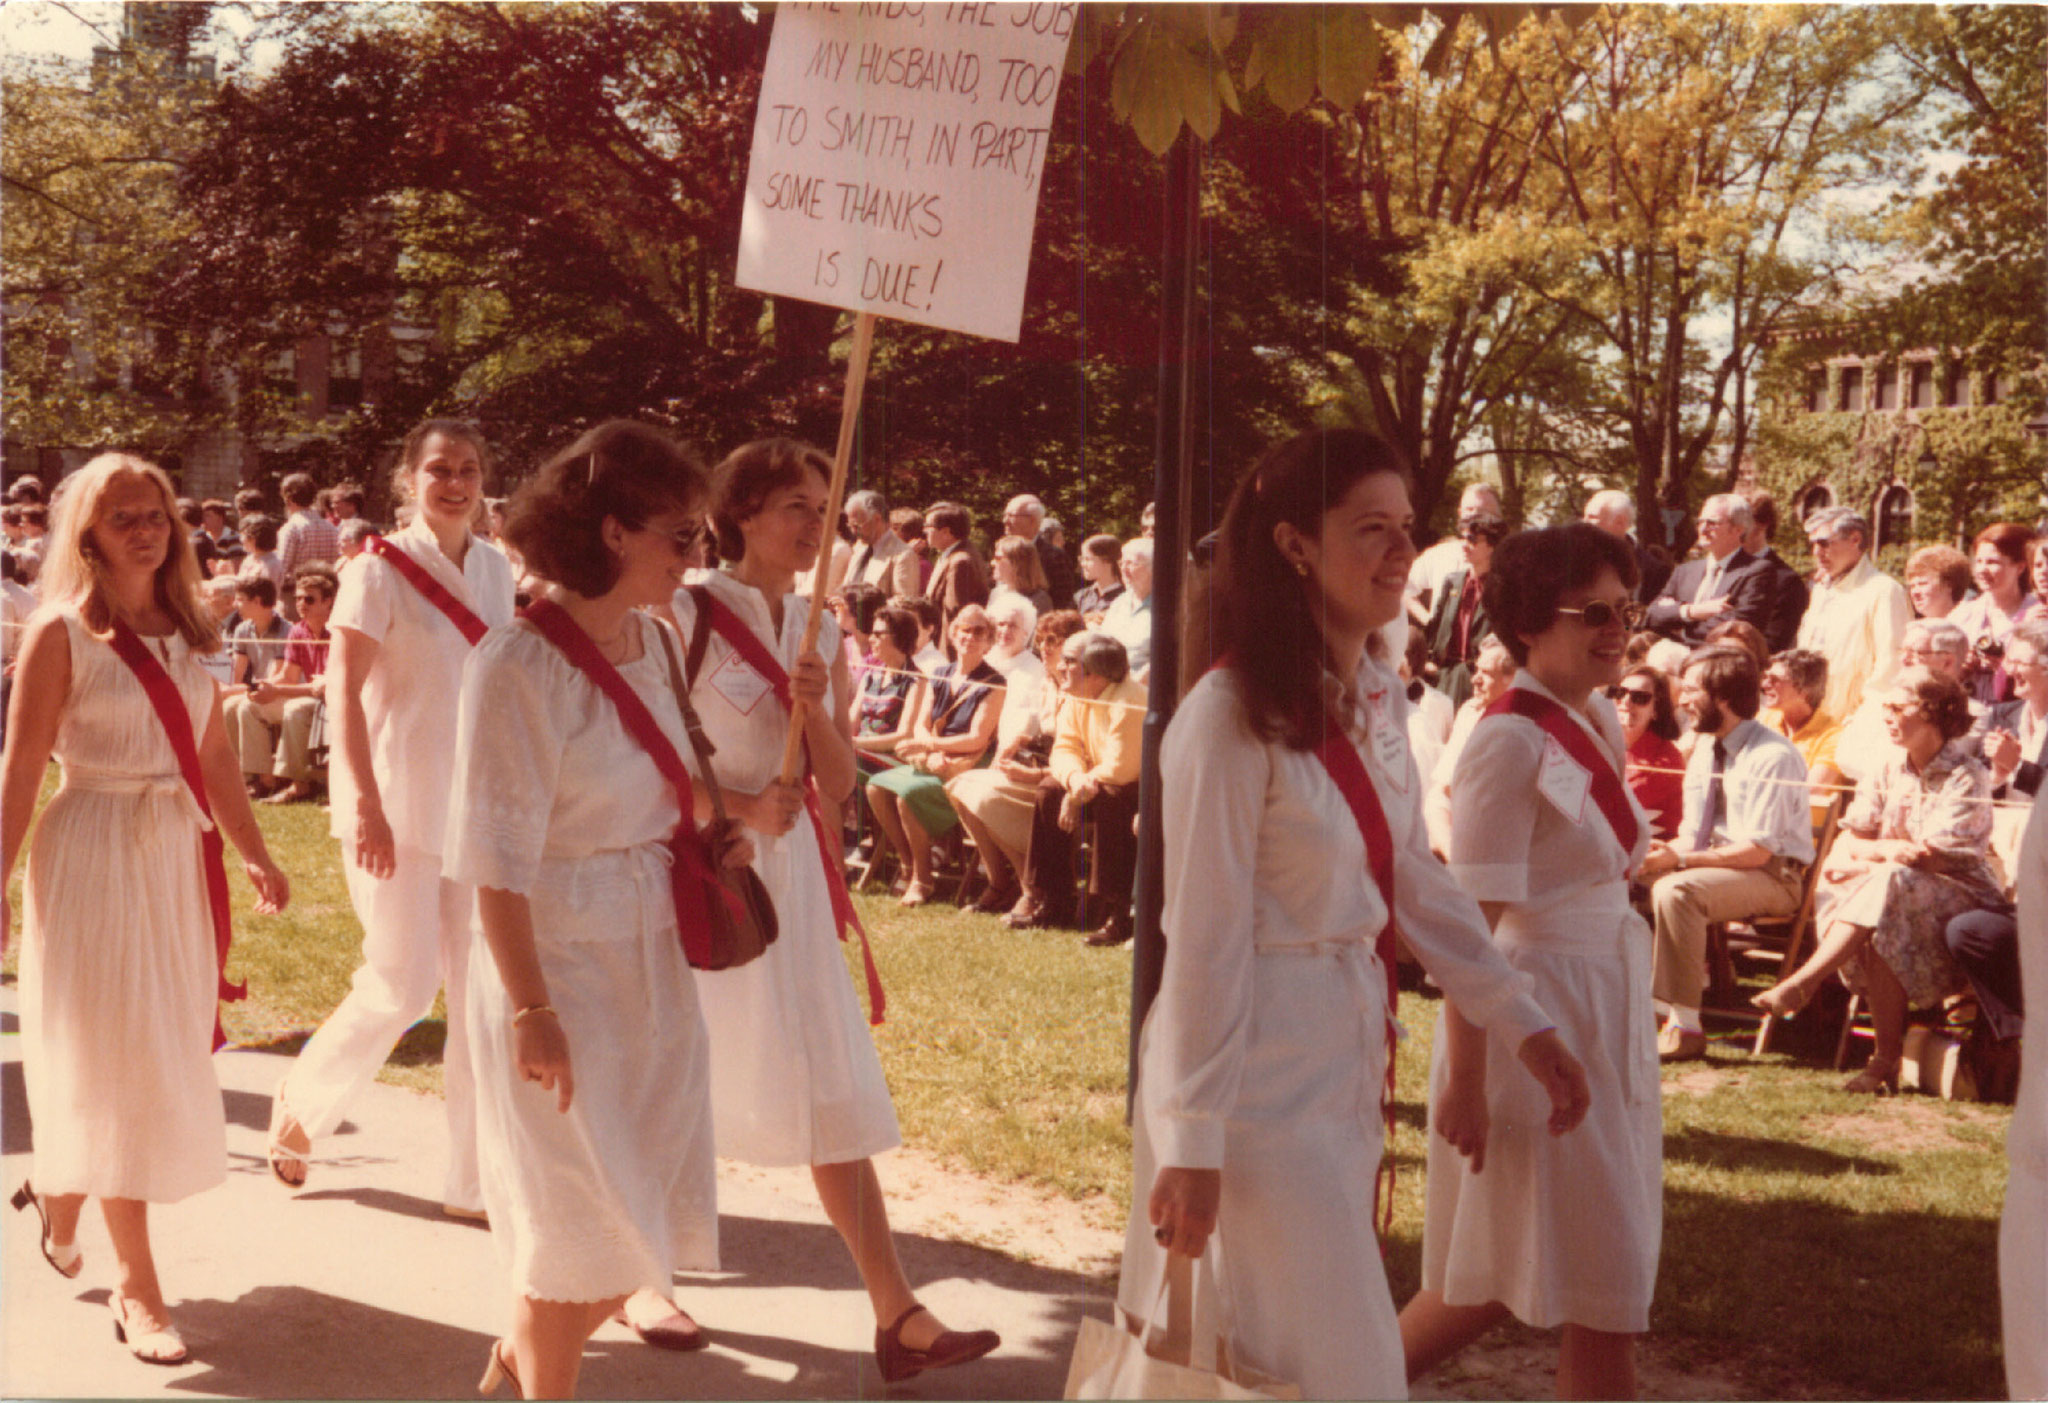 Lorraine holding sign, with Roxanne Horning next to her; in front, Betsy Buzash & Elizabeth Singer Maule